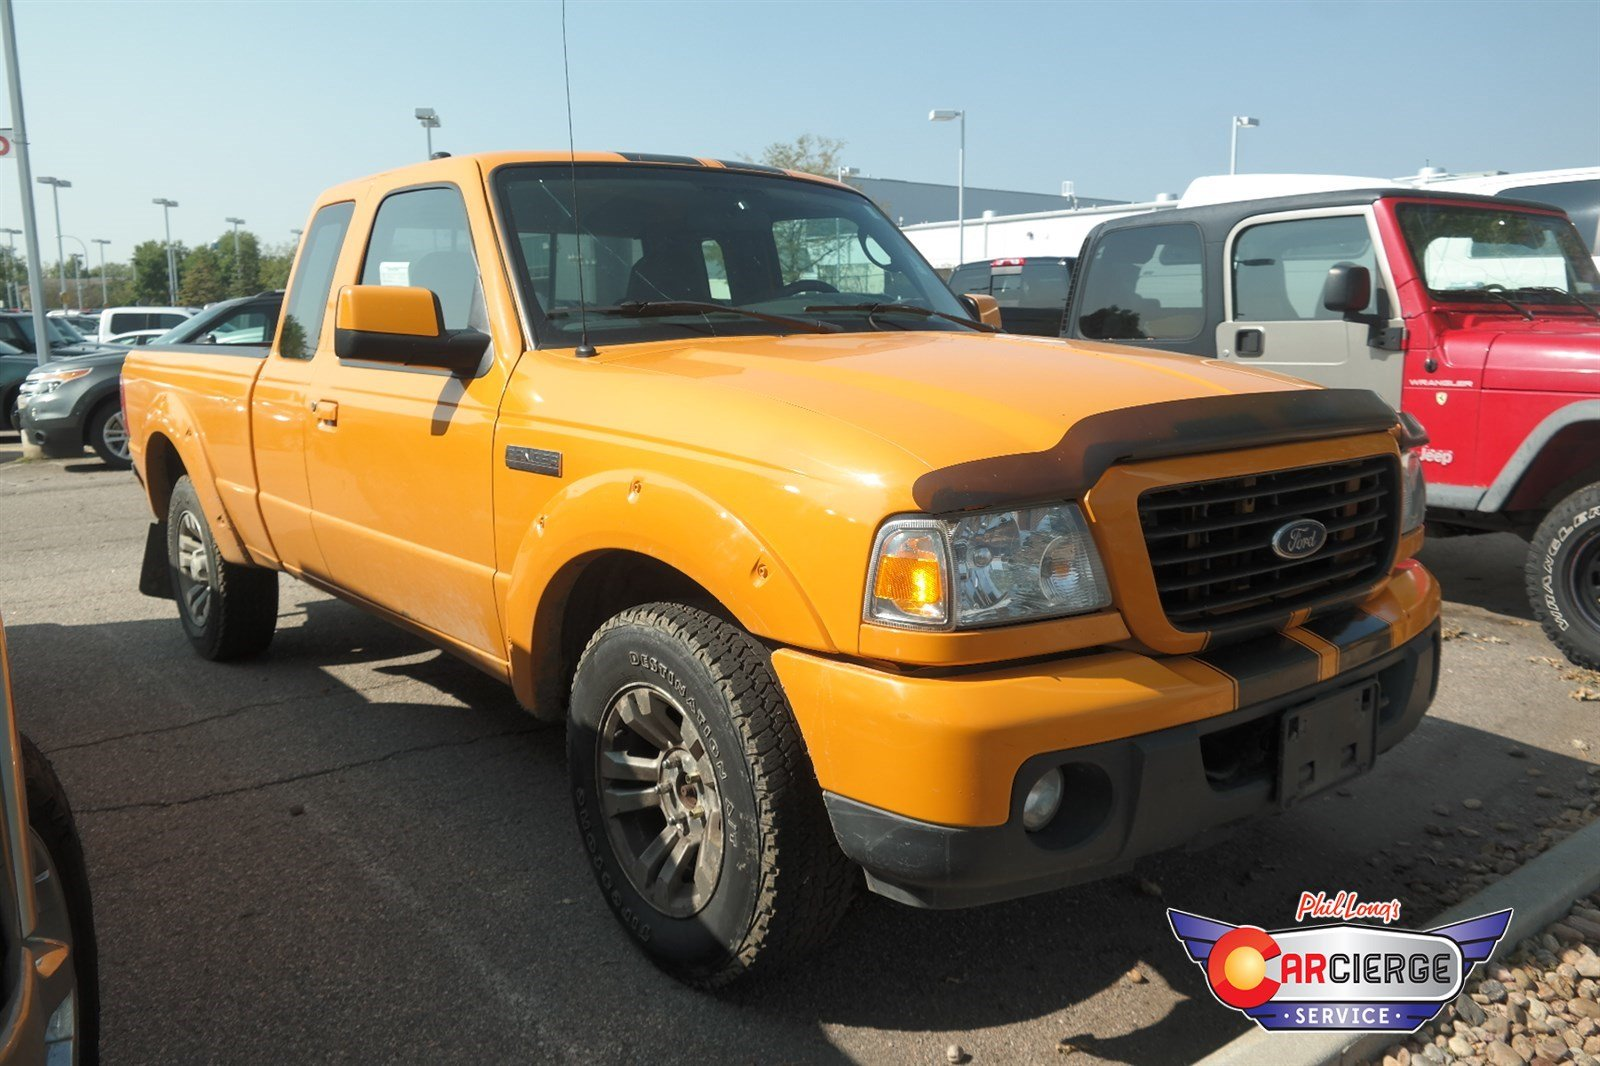 Photo Pre-Owned 2009 Ford Ranger Sport 4-Wheel Drive Extended Cab Pickup